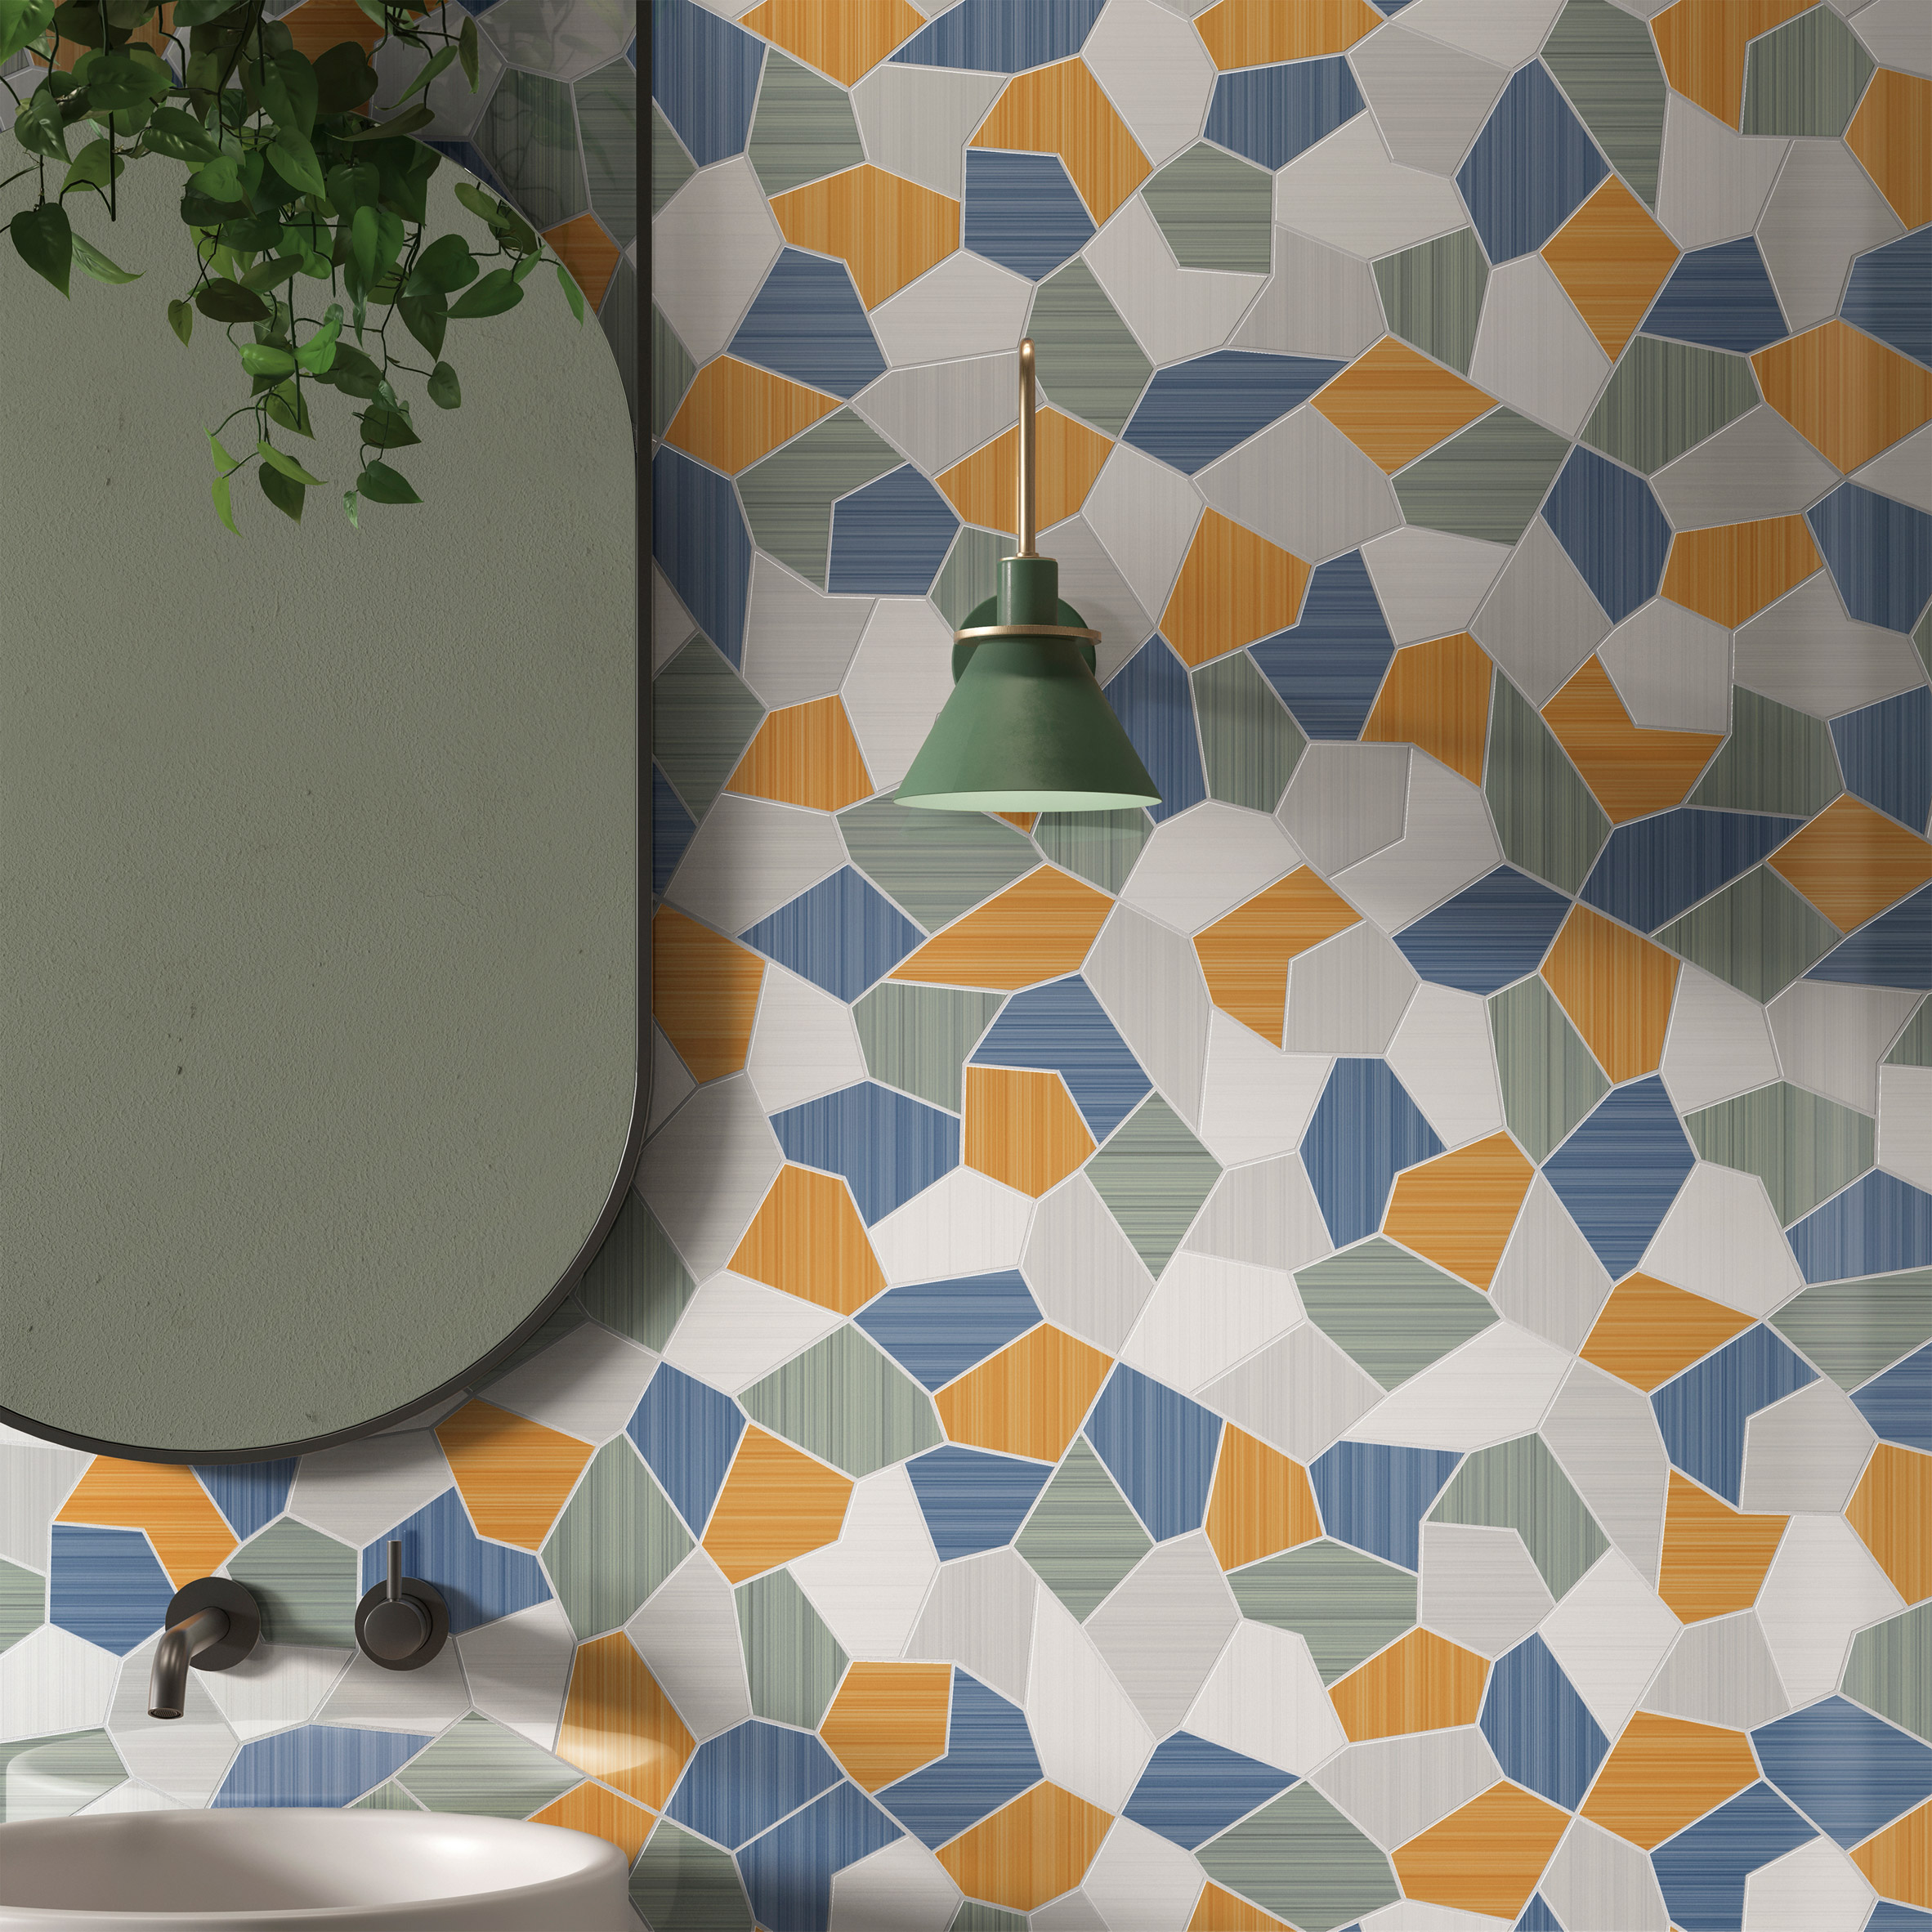 Caleidos Mosaico in Riflessi tile collection by Ceramiche Refin